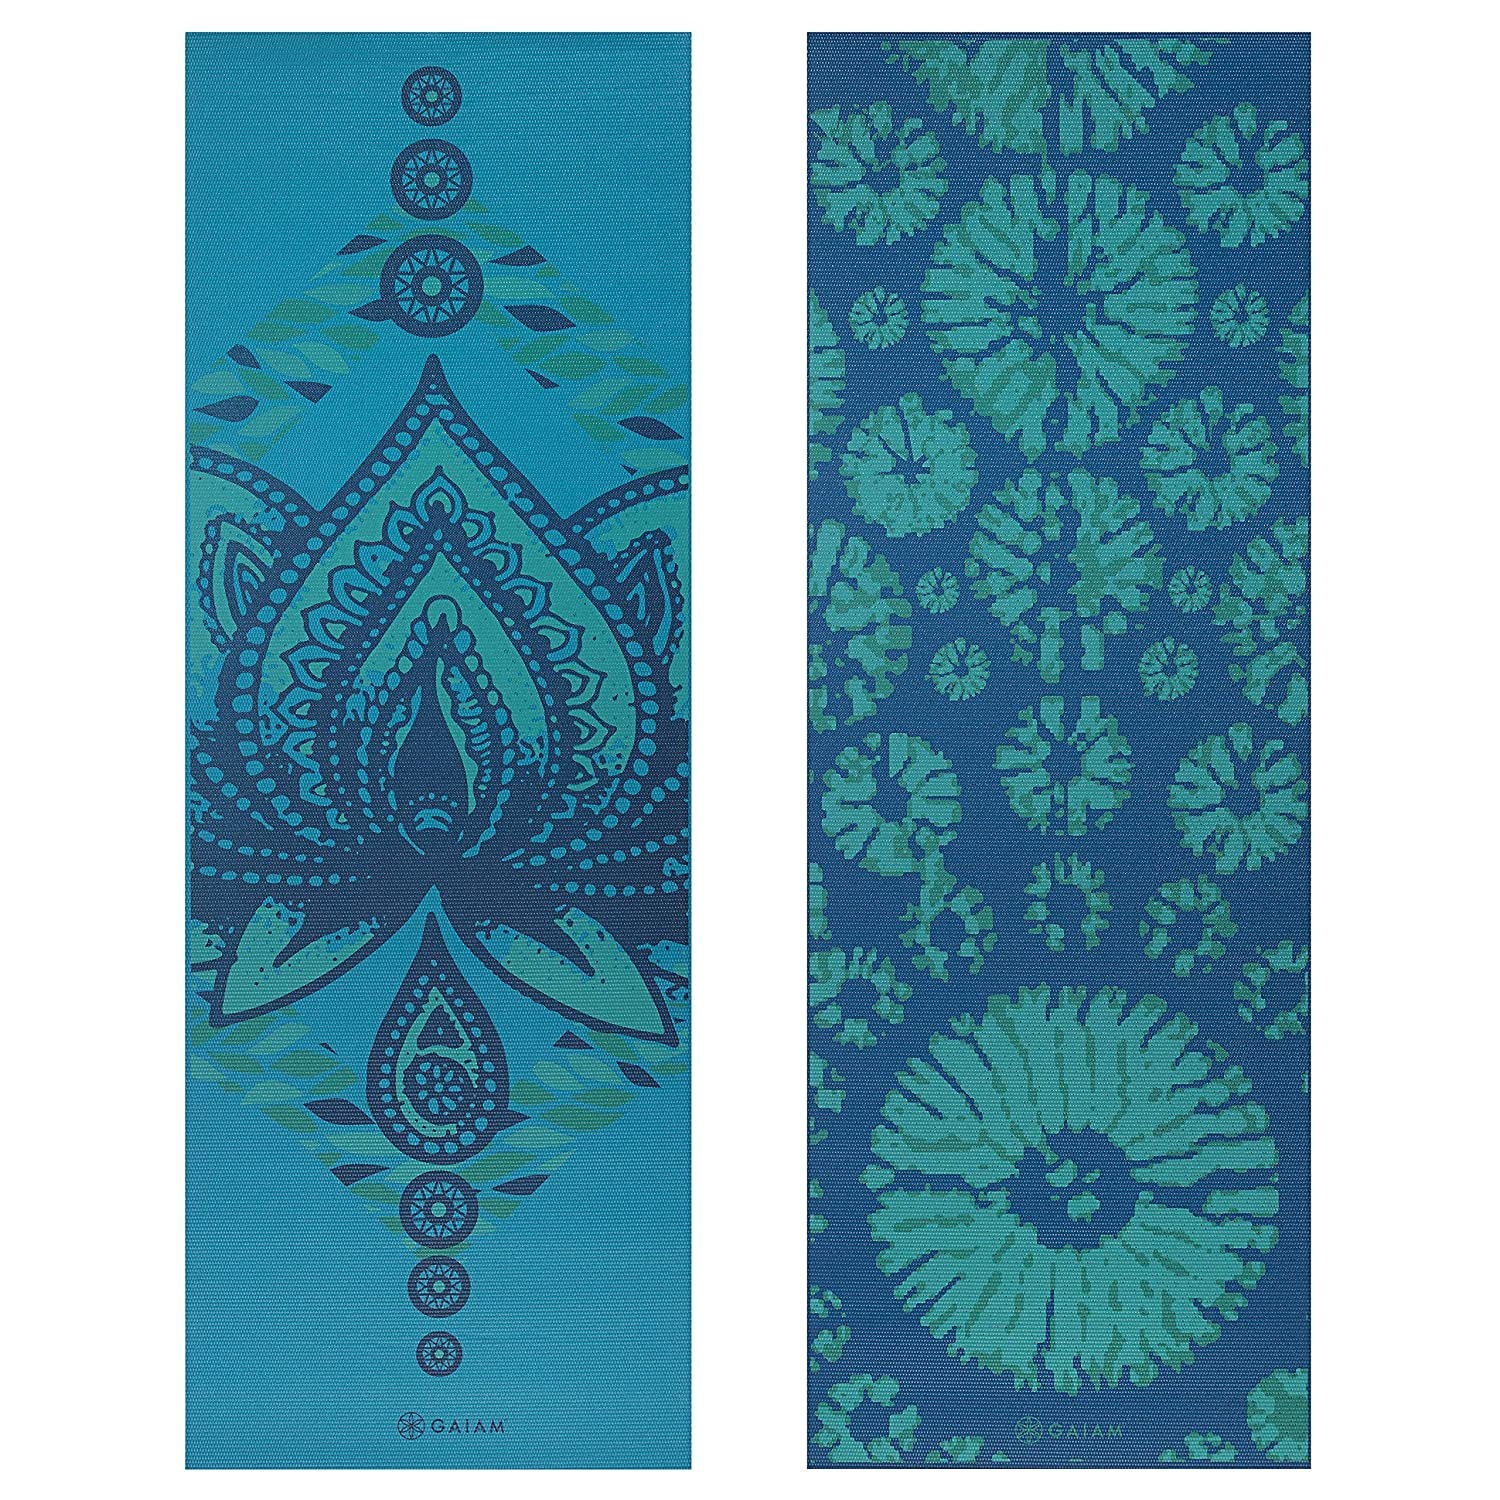 Pilates /& Floor Exercises Premium 6mm Print Reversible Extra Thick Exercise /& Fitness Mat for All Types of Yoga Gaiam Yoga Mat Elephant 5//6mm 05-61547 Accessory Fitness//Self-Help 68 x 24 x 6mm Thick